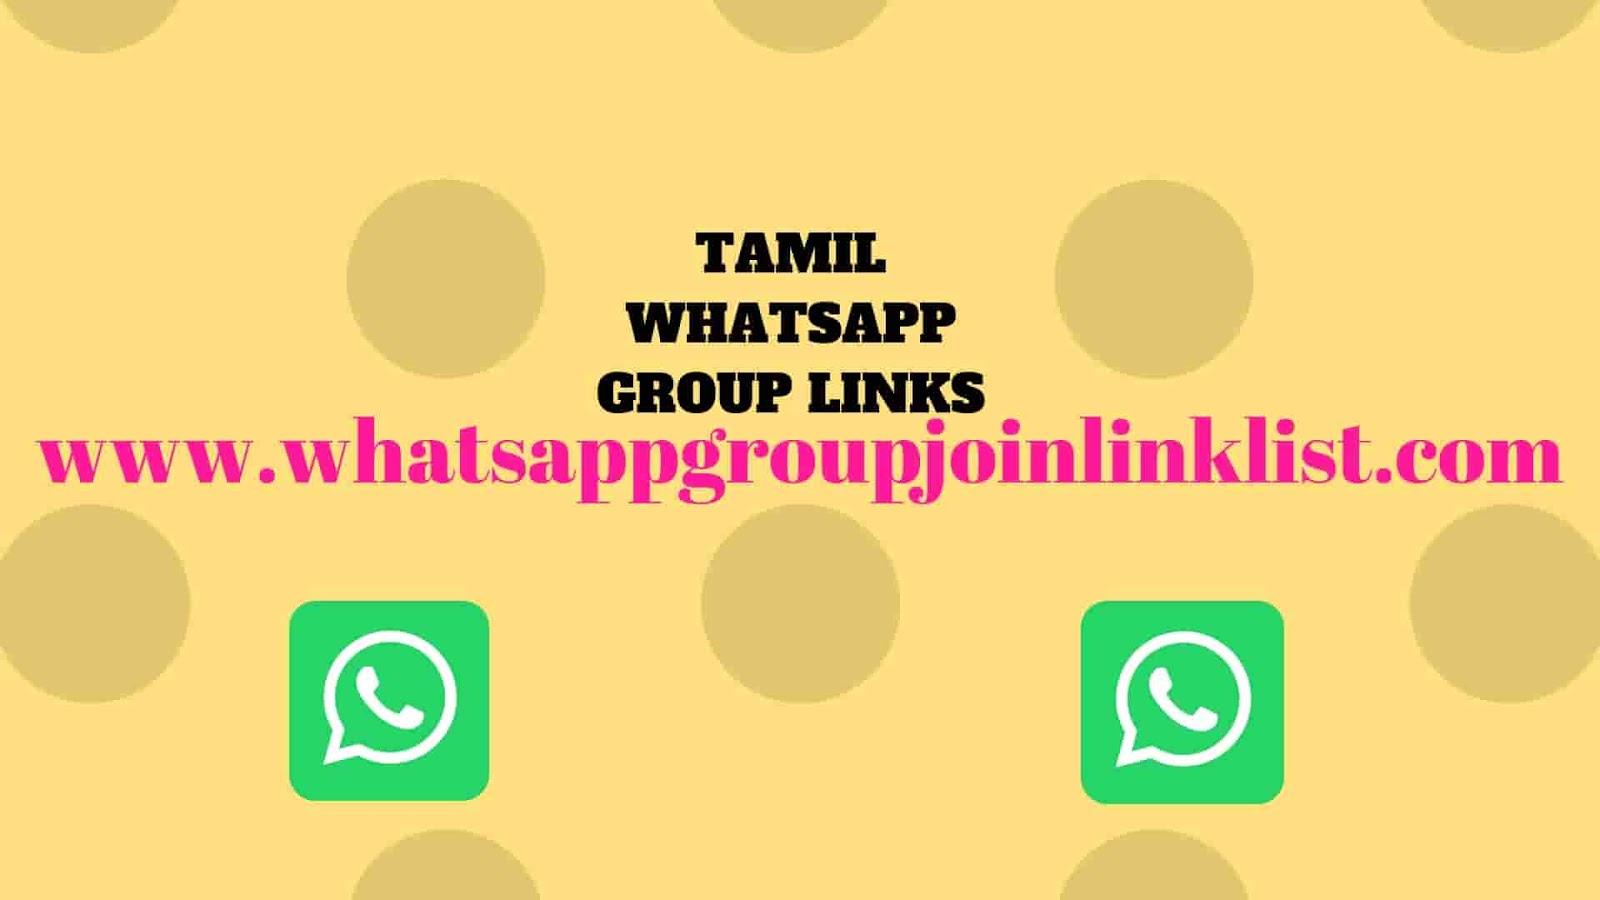 TAMIL WHATSAPP GROUP LINKS 2019